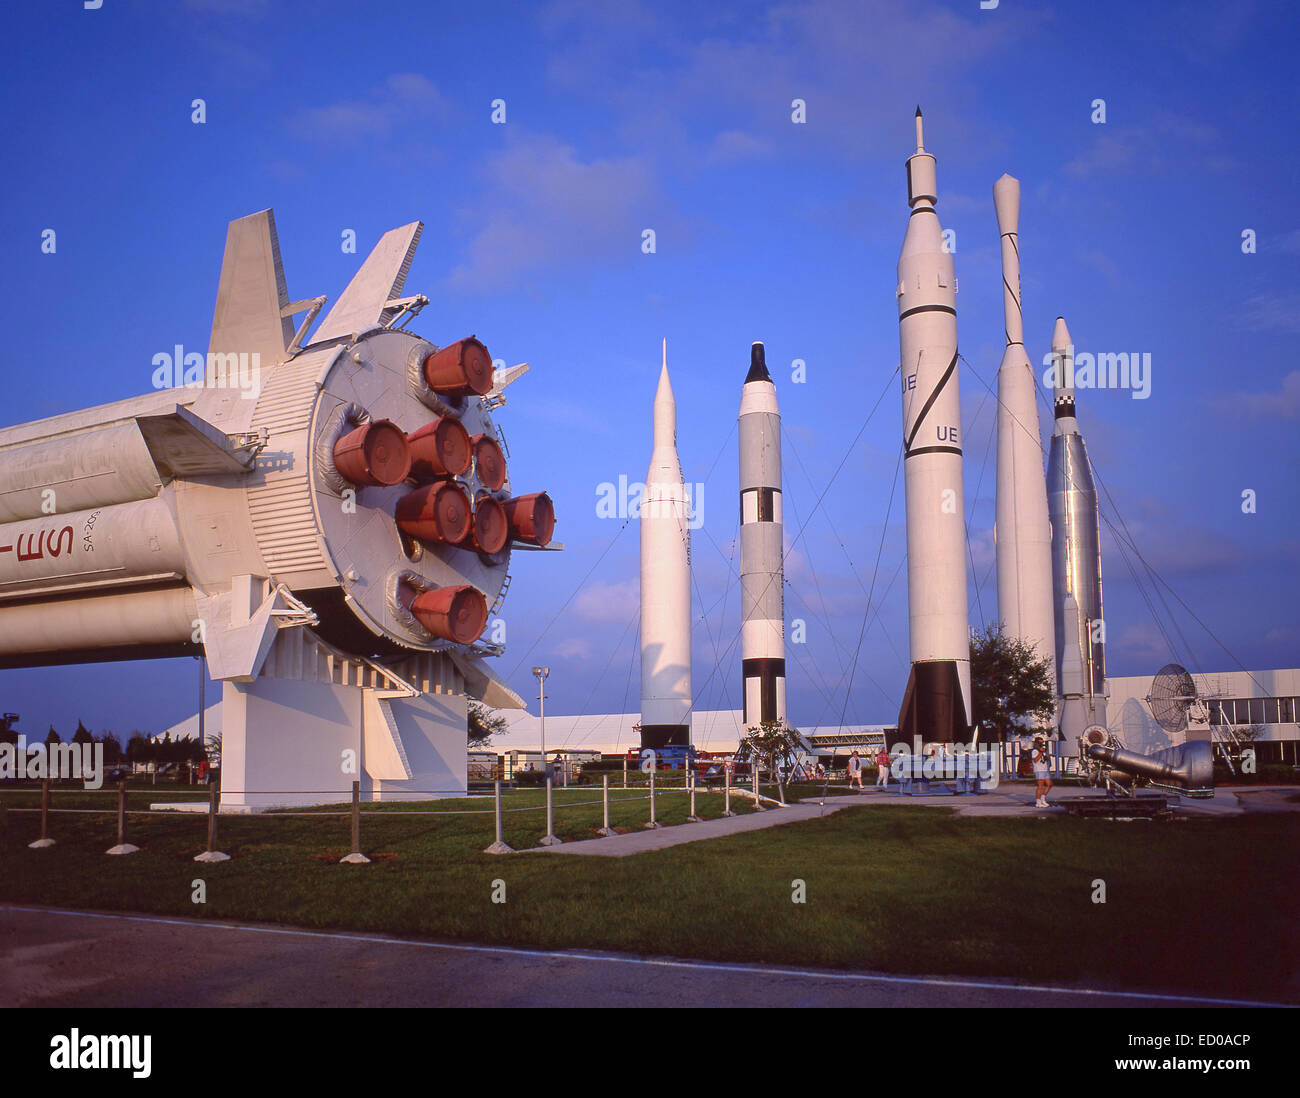 Spaceport USA, J.F.Kennedy Space Center, Merritt Island, Florida, United States of America - Stock Image